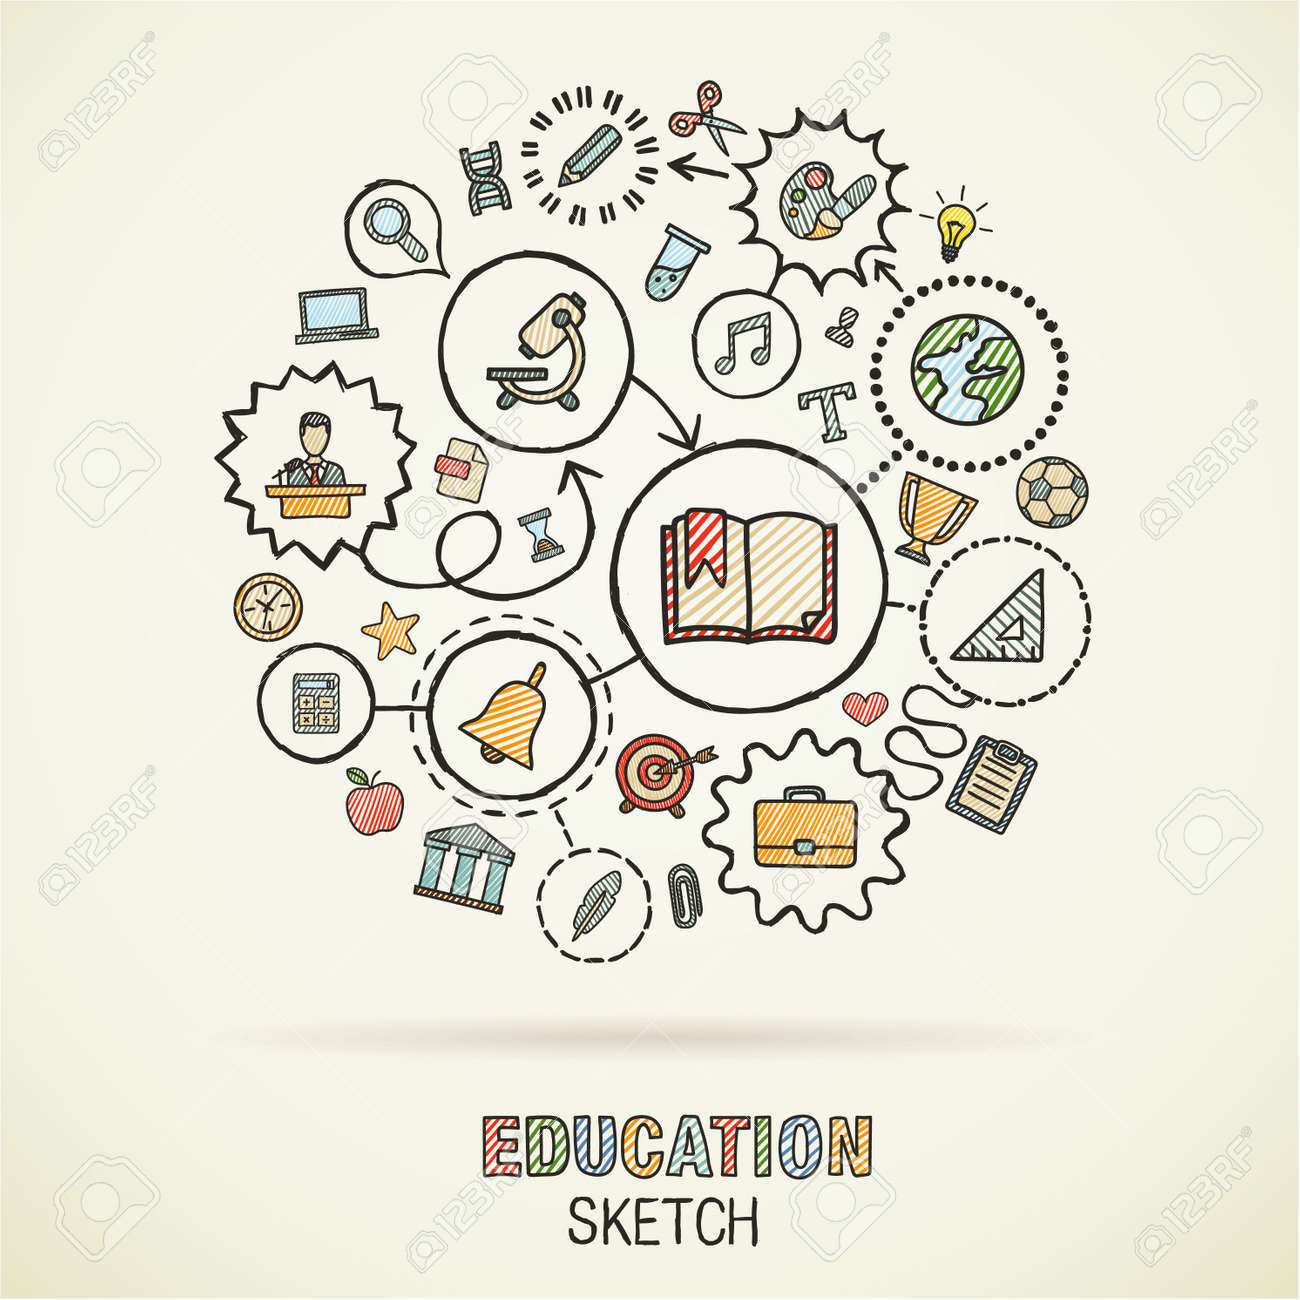 Educationhand drawing connected icons. Vector doodle interactive pictogram set: sketch concept illustration on paper: elearning, knowledge, learn, analytics, network, science, social media. - 43377687